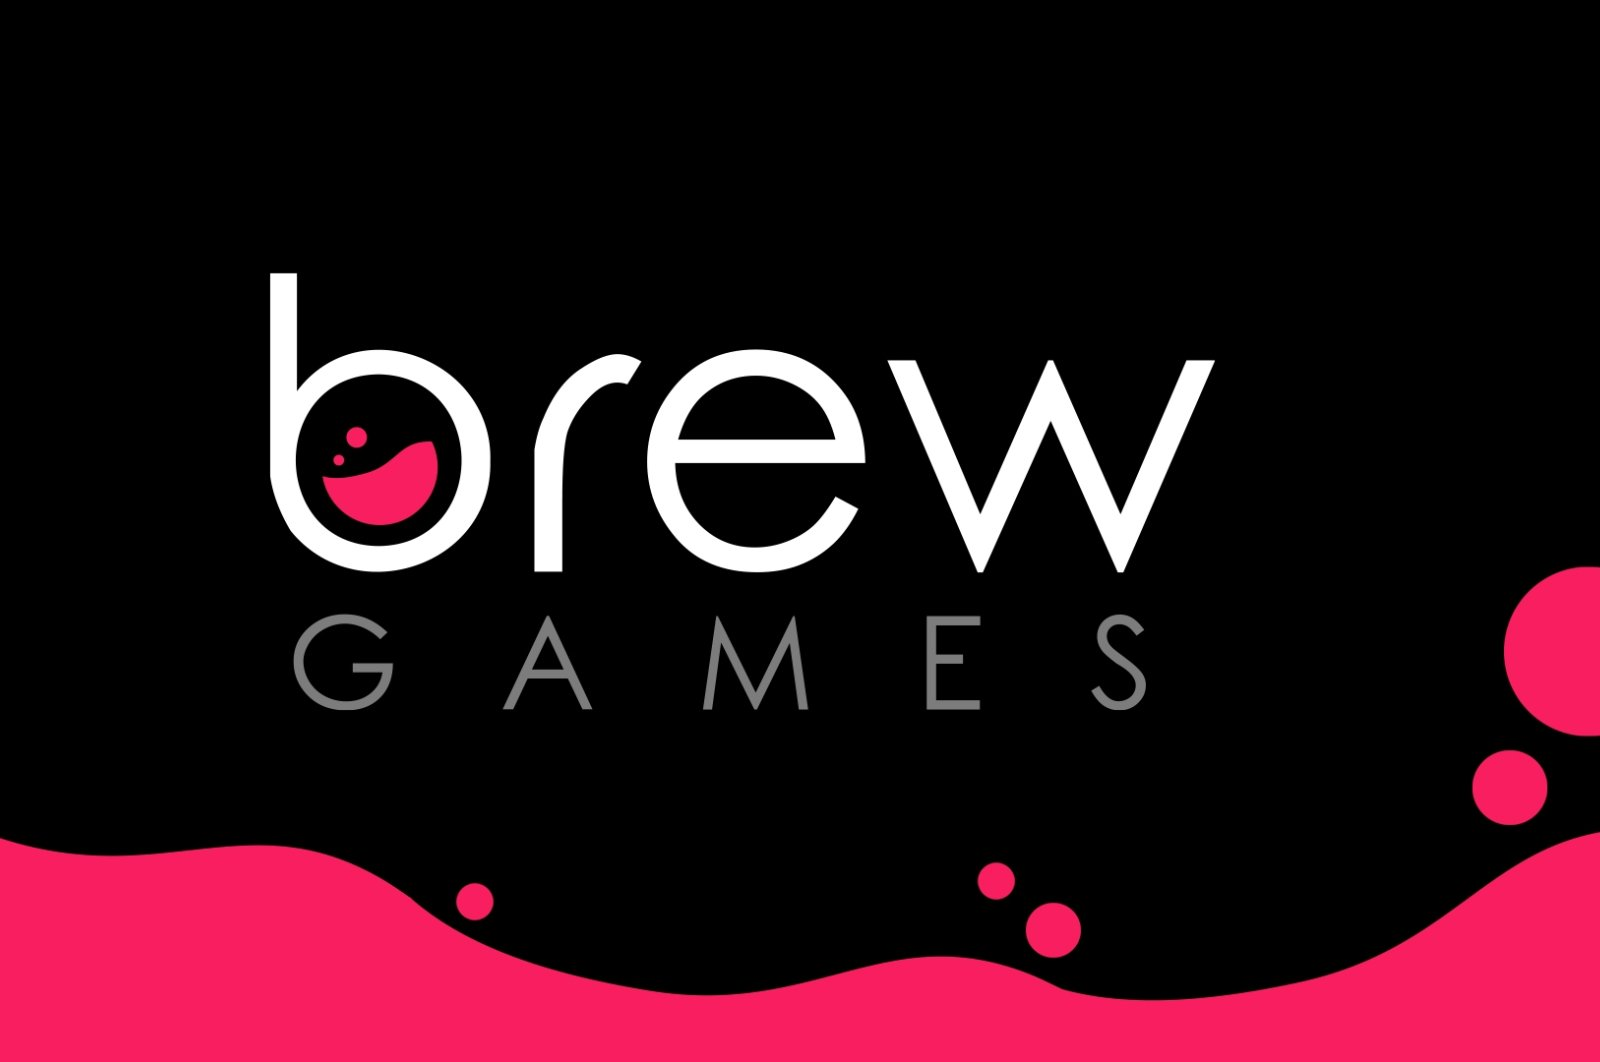 The logo of Turkish gaming company Brew Games. (Courtesy of Brew Games)